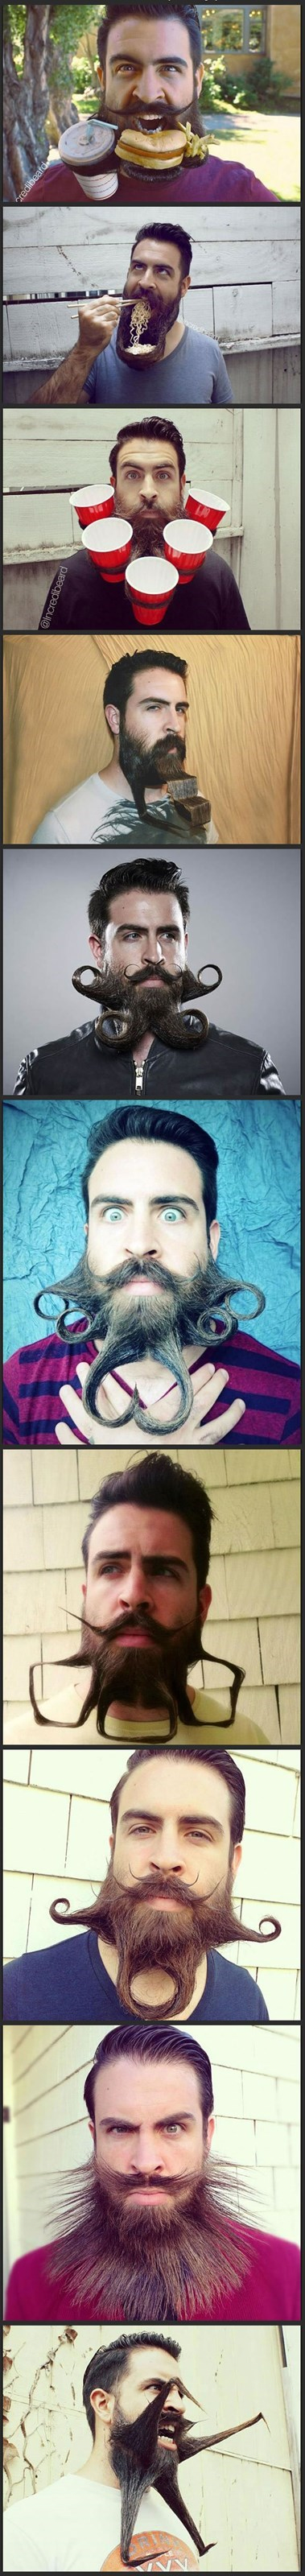 The Best Facial Hair You'll See This Week